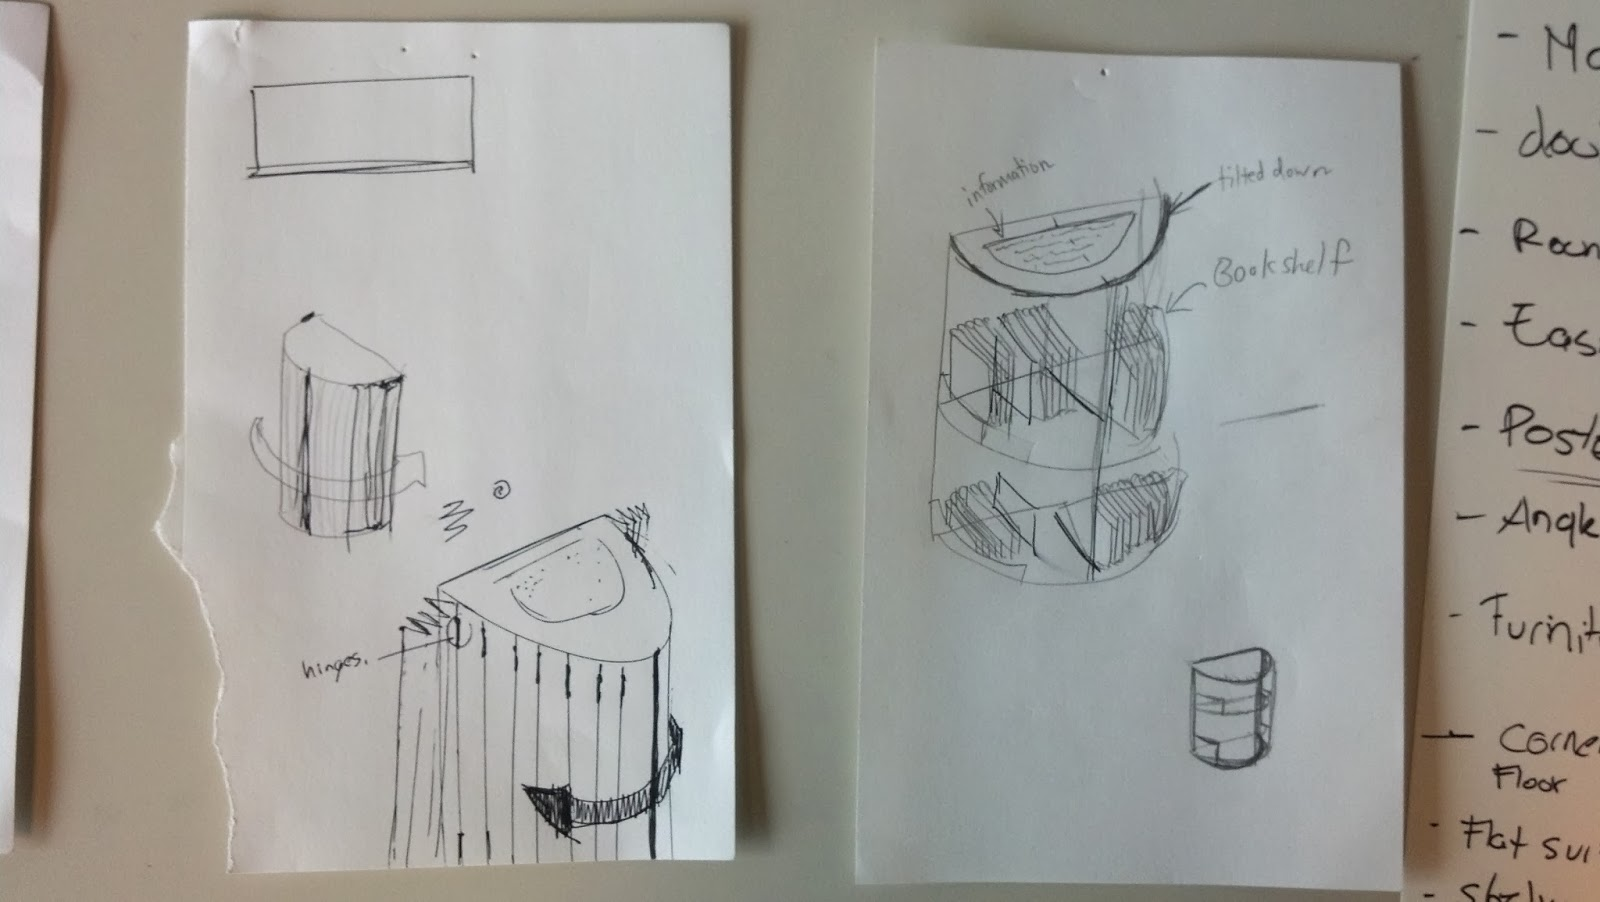 Image shows two pages with sketches pinned to a wall. The sketches contain ideations of a fold-able screen door for the side shelves along with a sketch of books on the shelves.